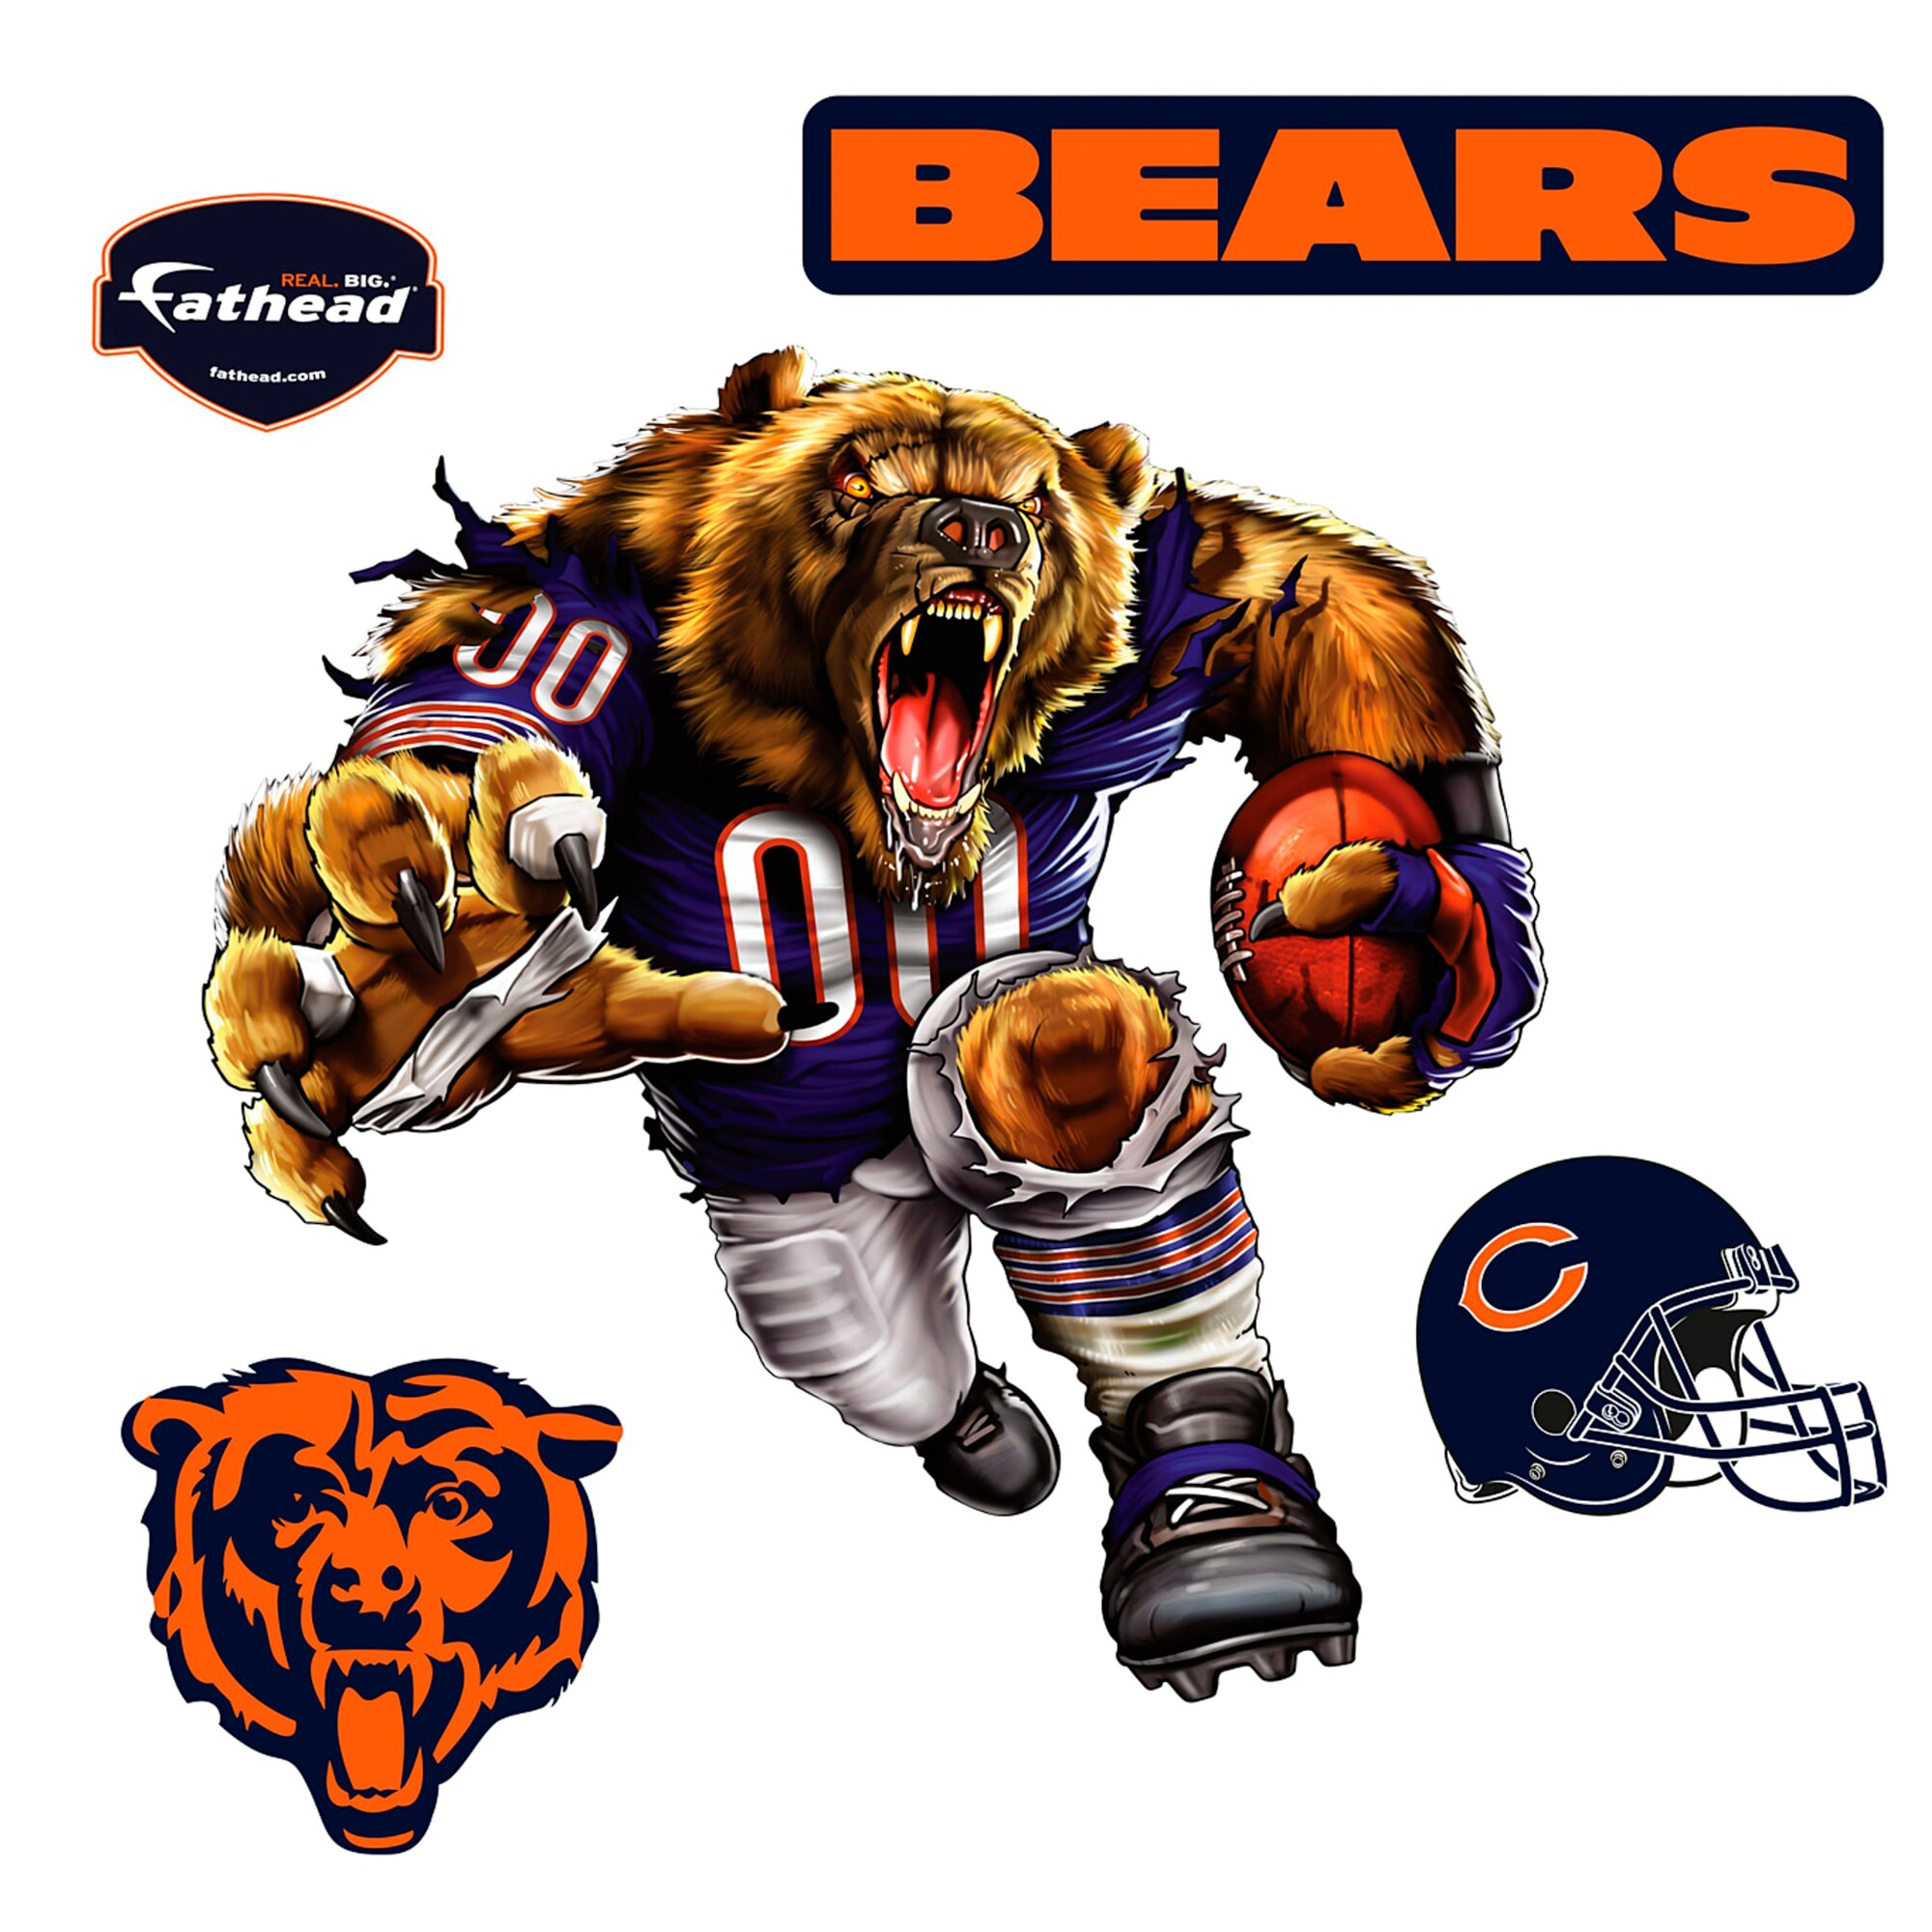 Chicago Bears Fathead Bruiser Bear 5-Pack Removable Wall Decal